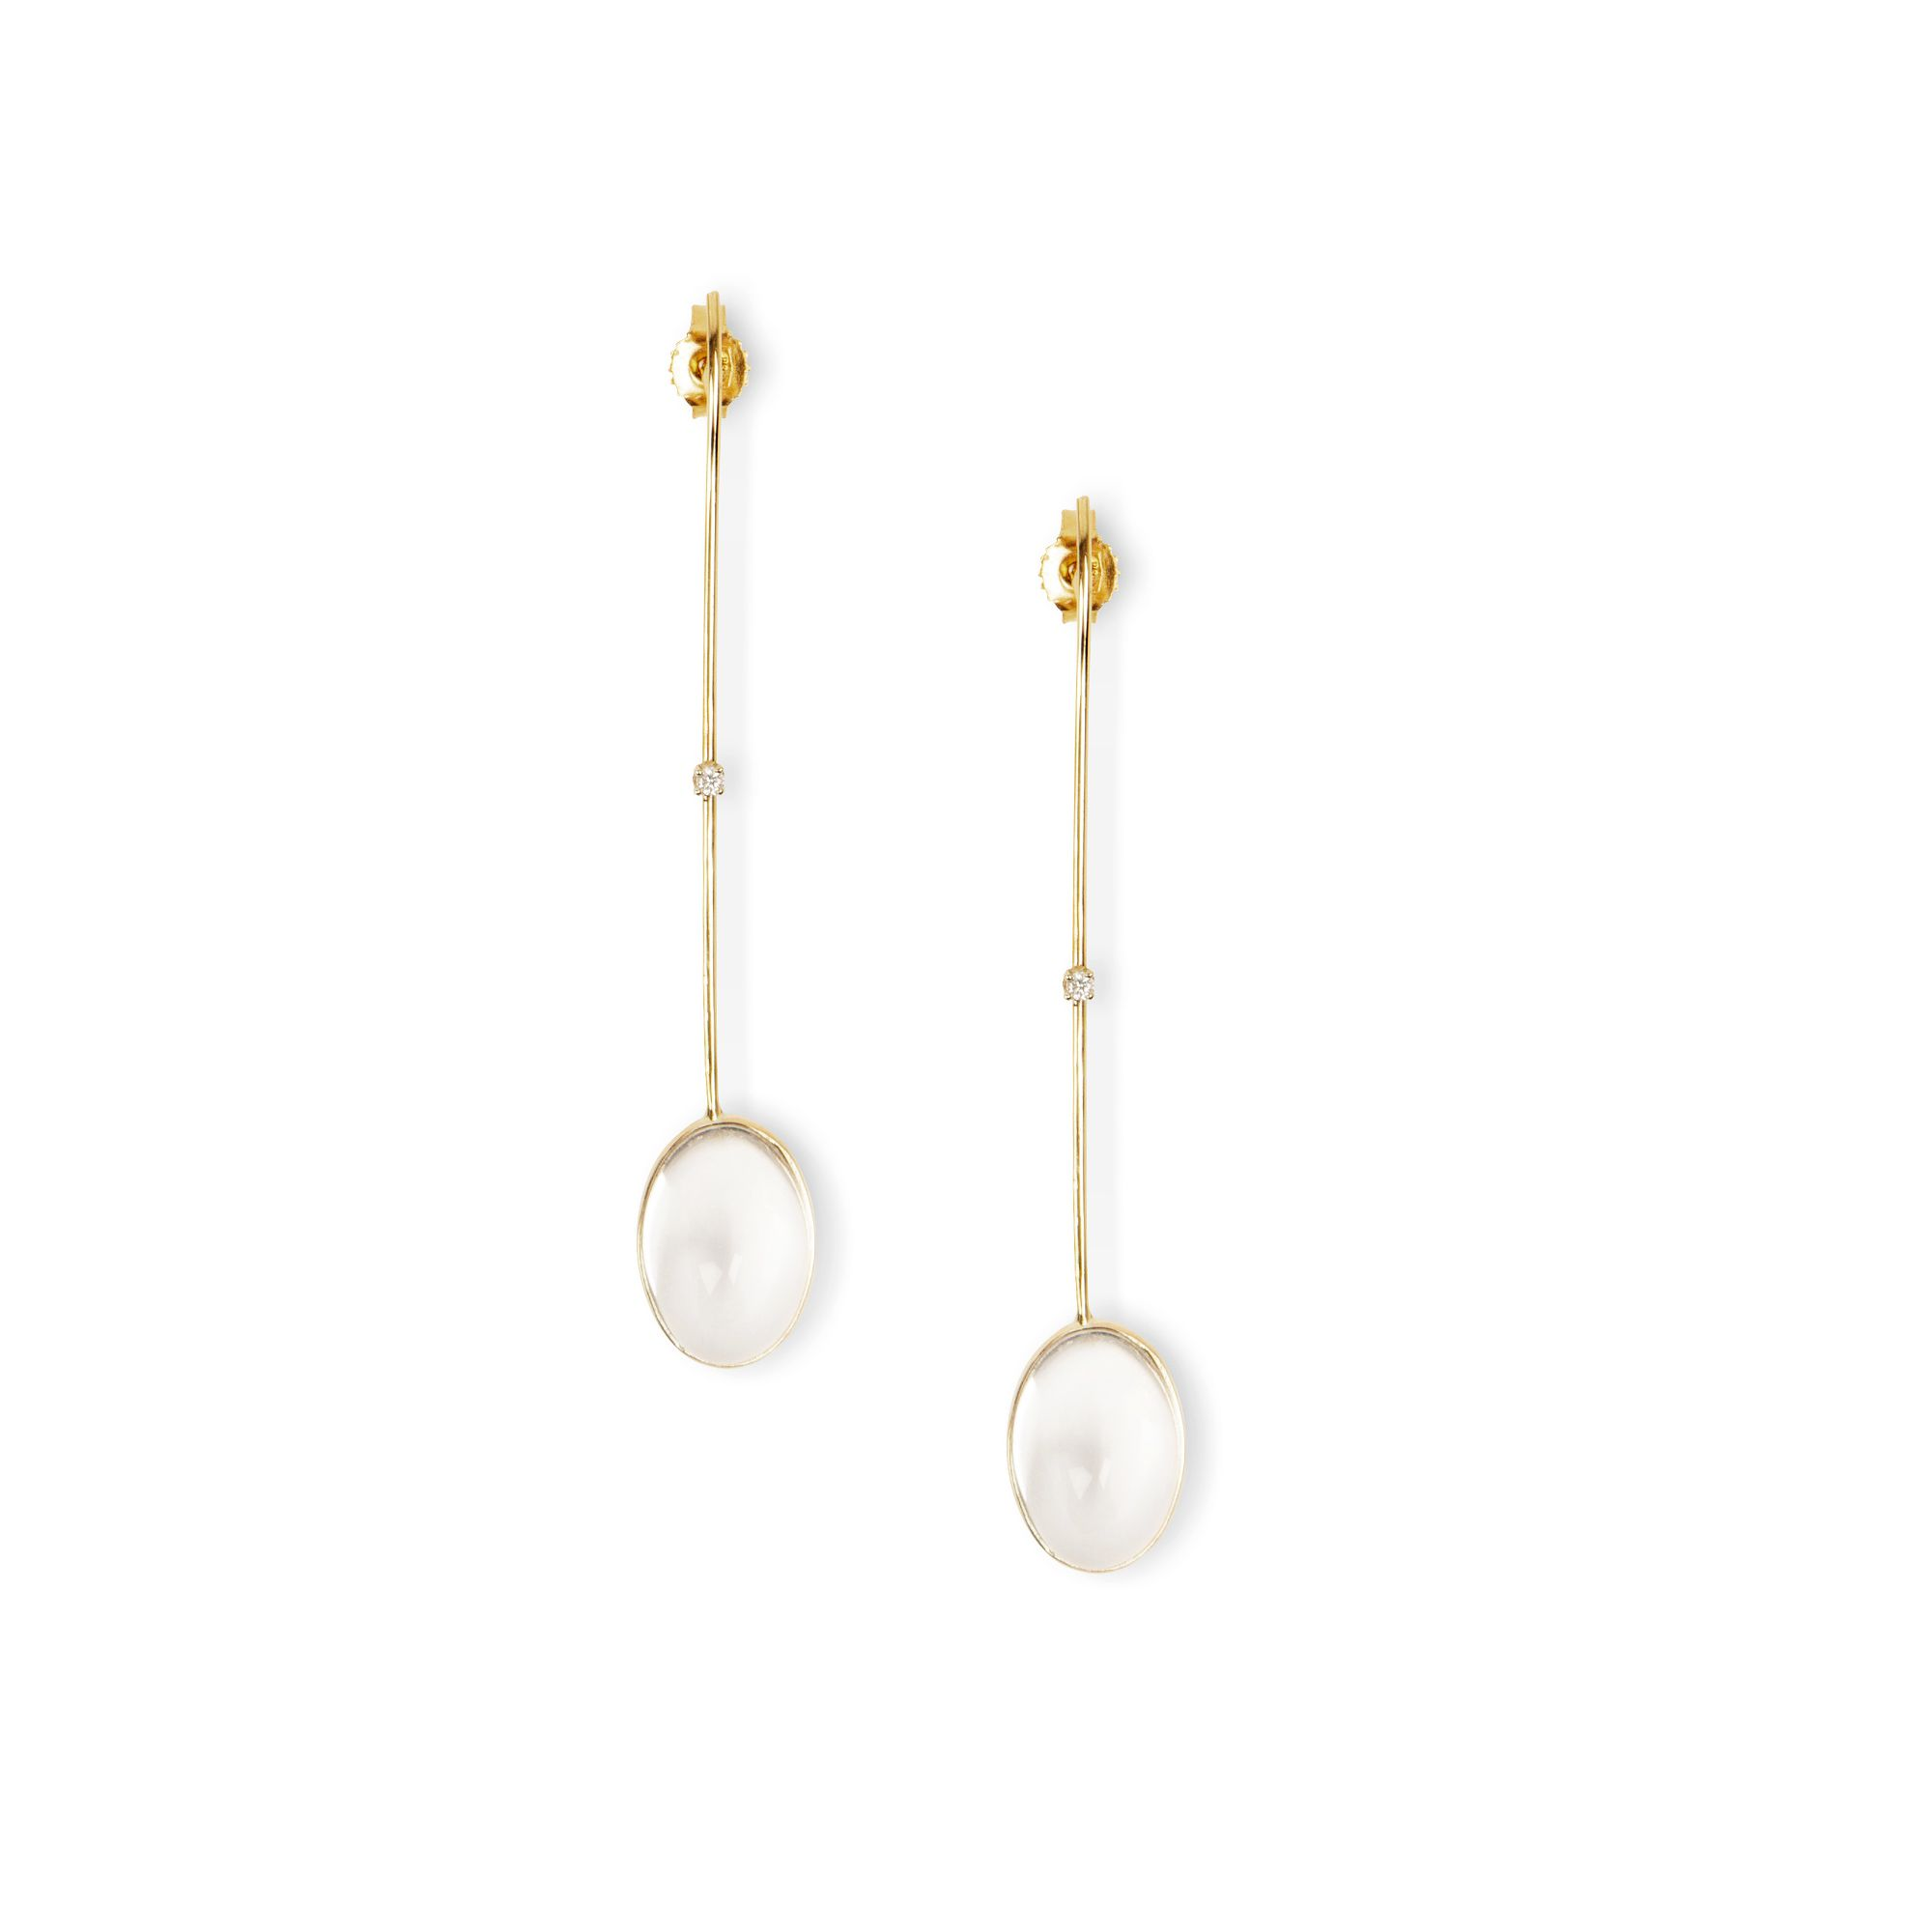 'Amo' with cabochon crystals Earrings in yellow gold, diamonds and crystals